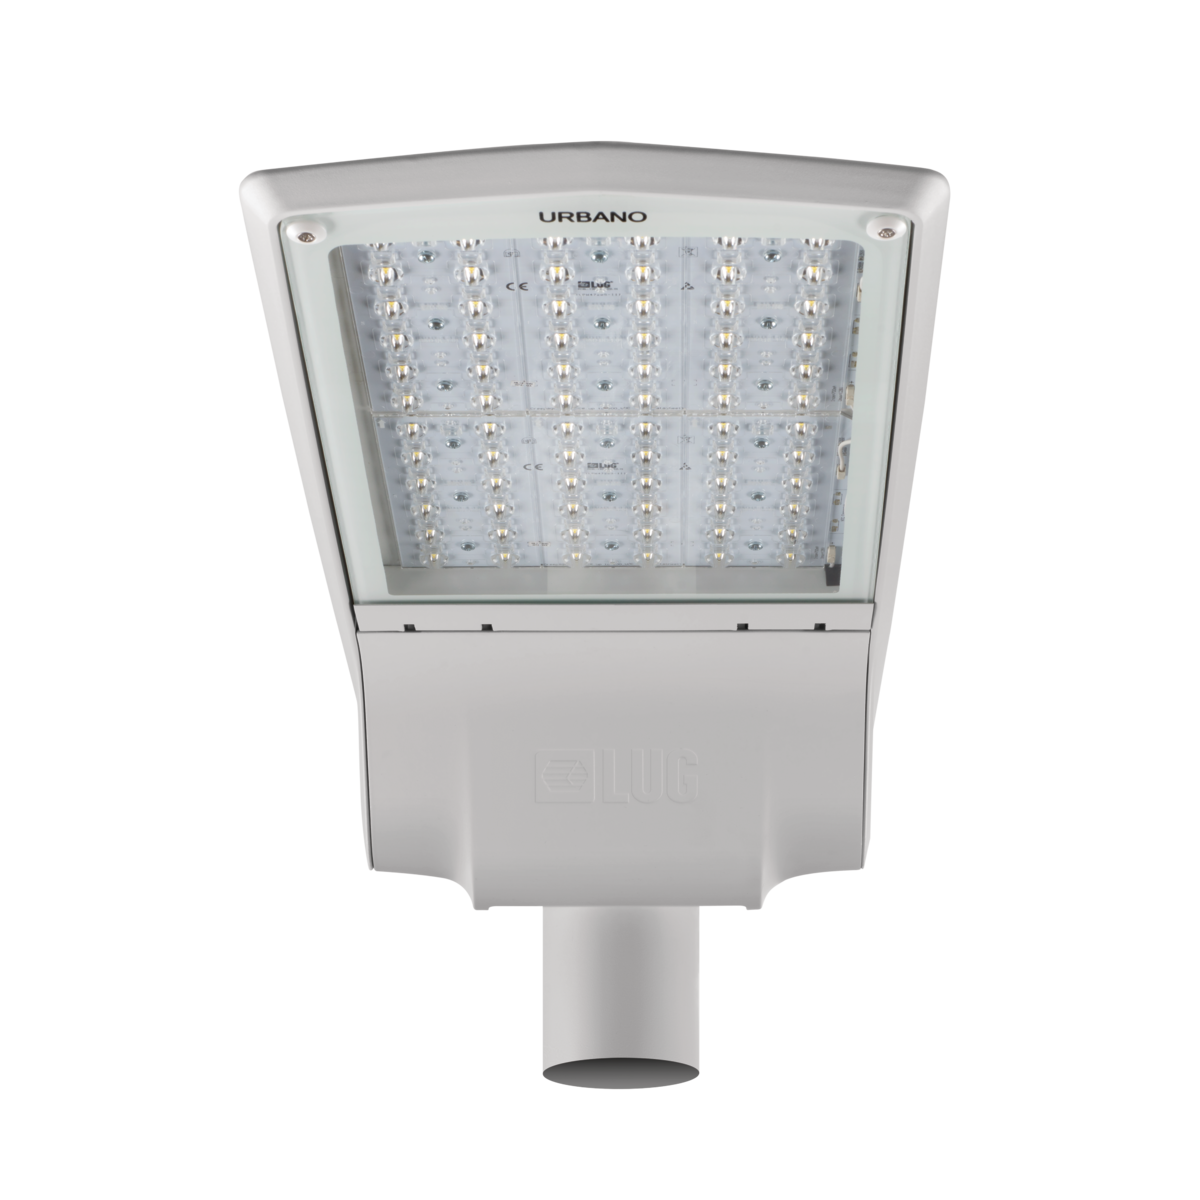 URBANO LED - Professional streetlight LED luminaire - LUG on